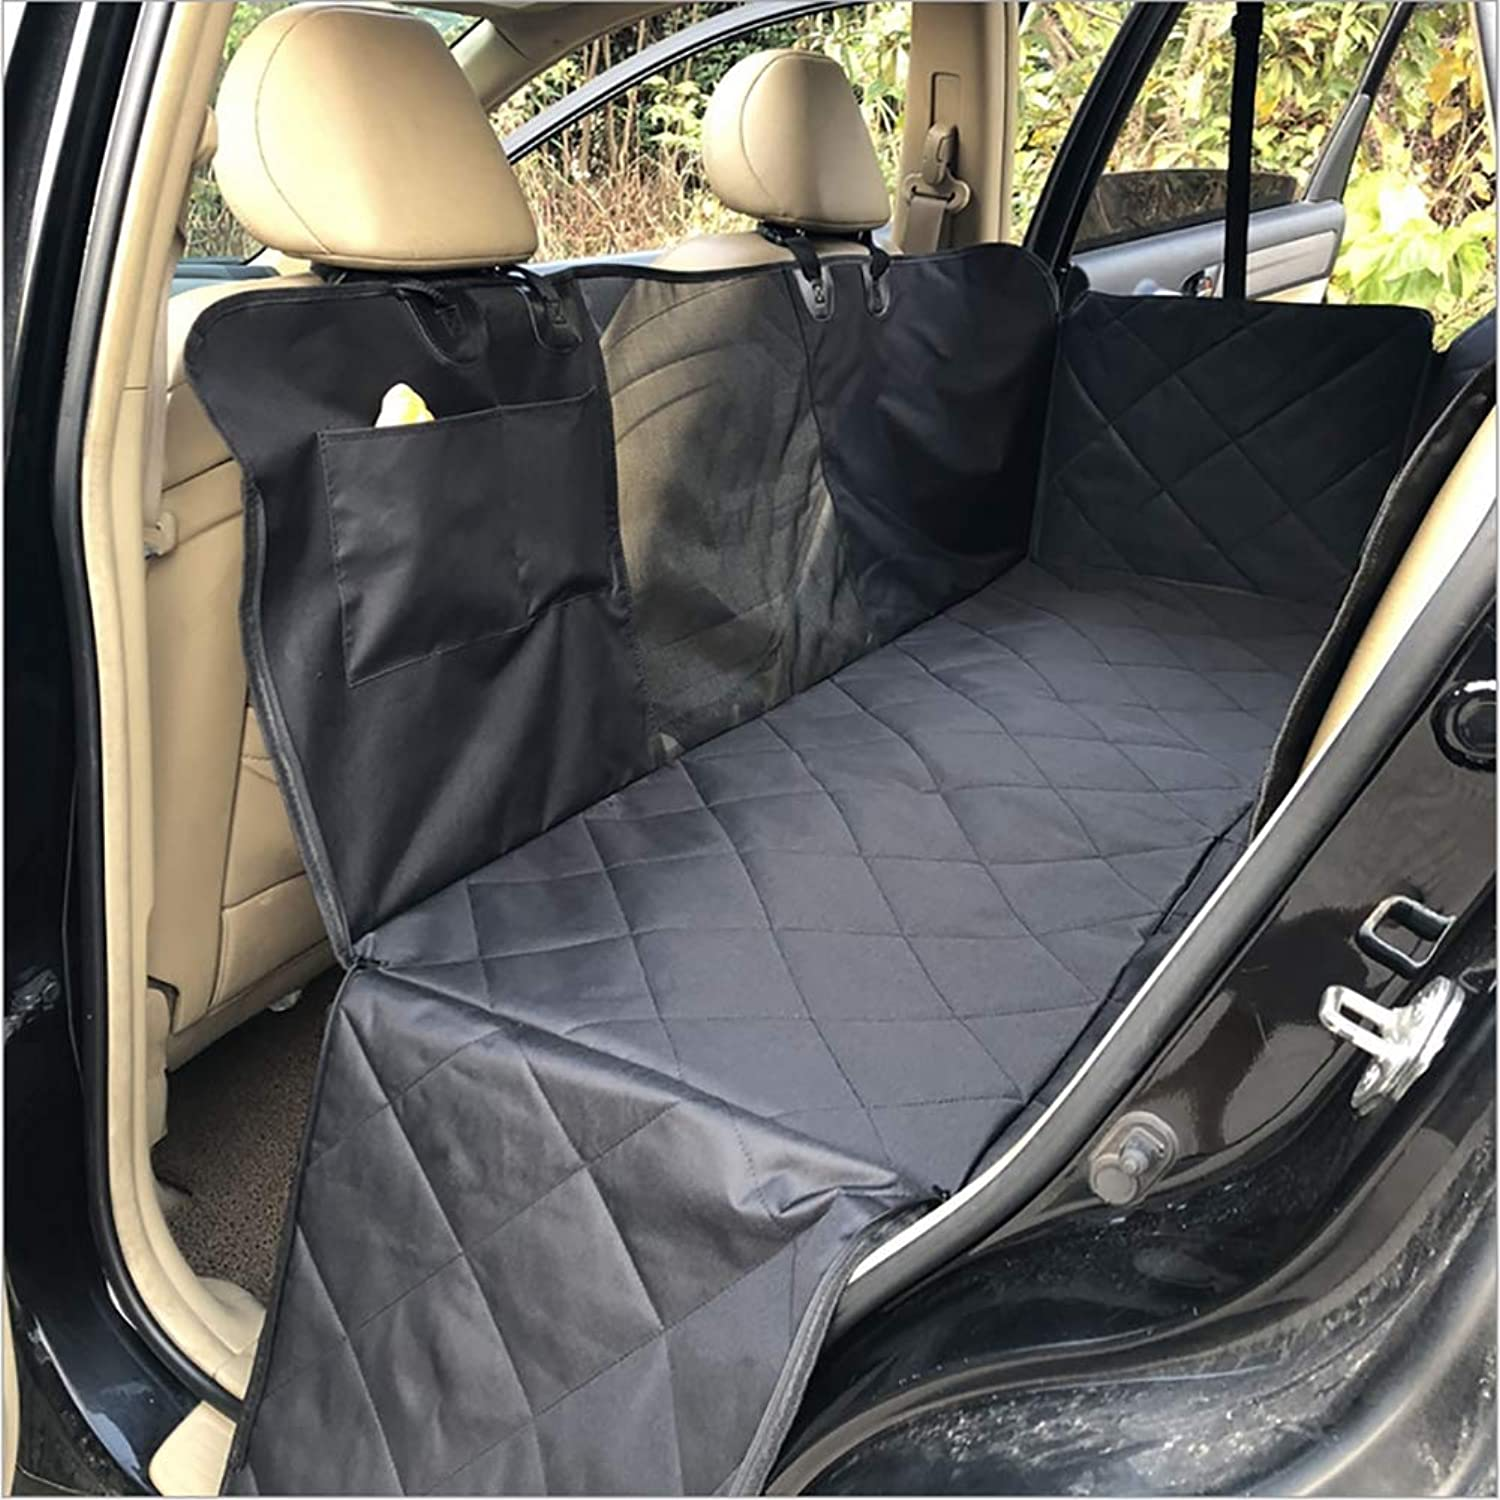 Dog Seat CoverPet Car Seat Cover Bench Car Seat Cover Predector Waterproof AntiDirty for Cars, Trucks, and Suv's